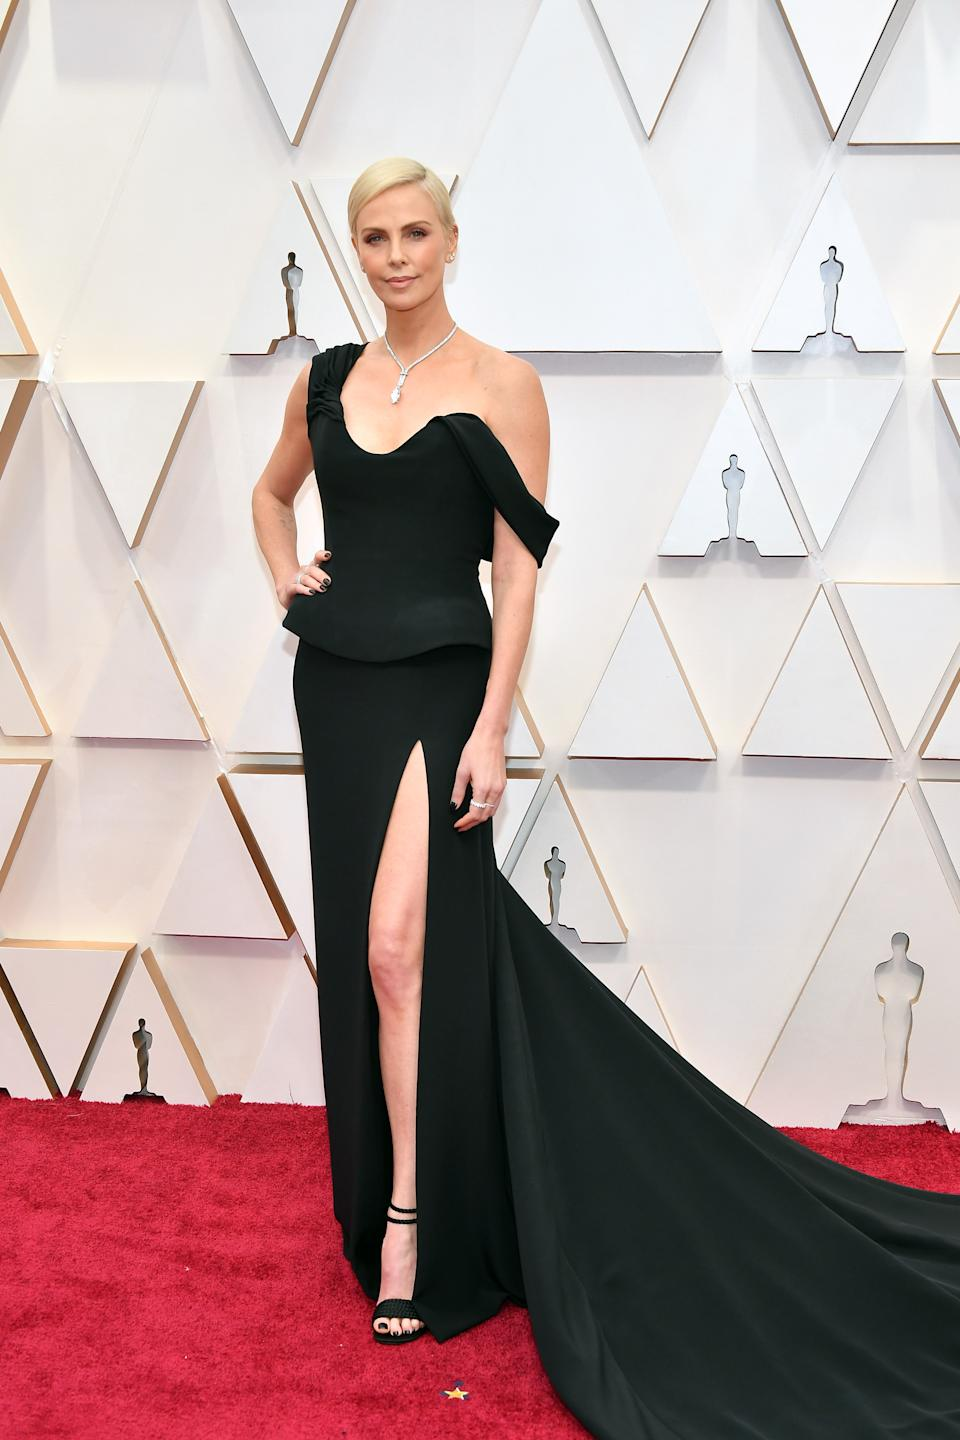 """The Oscar winner and Best Actress nominee for her portrayal of Megyn Kelly in """"Bombshell"""" looked elegant in a black gown by Dior."""